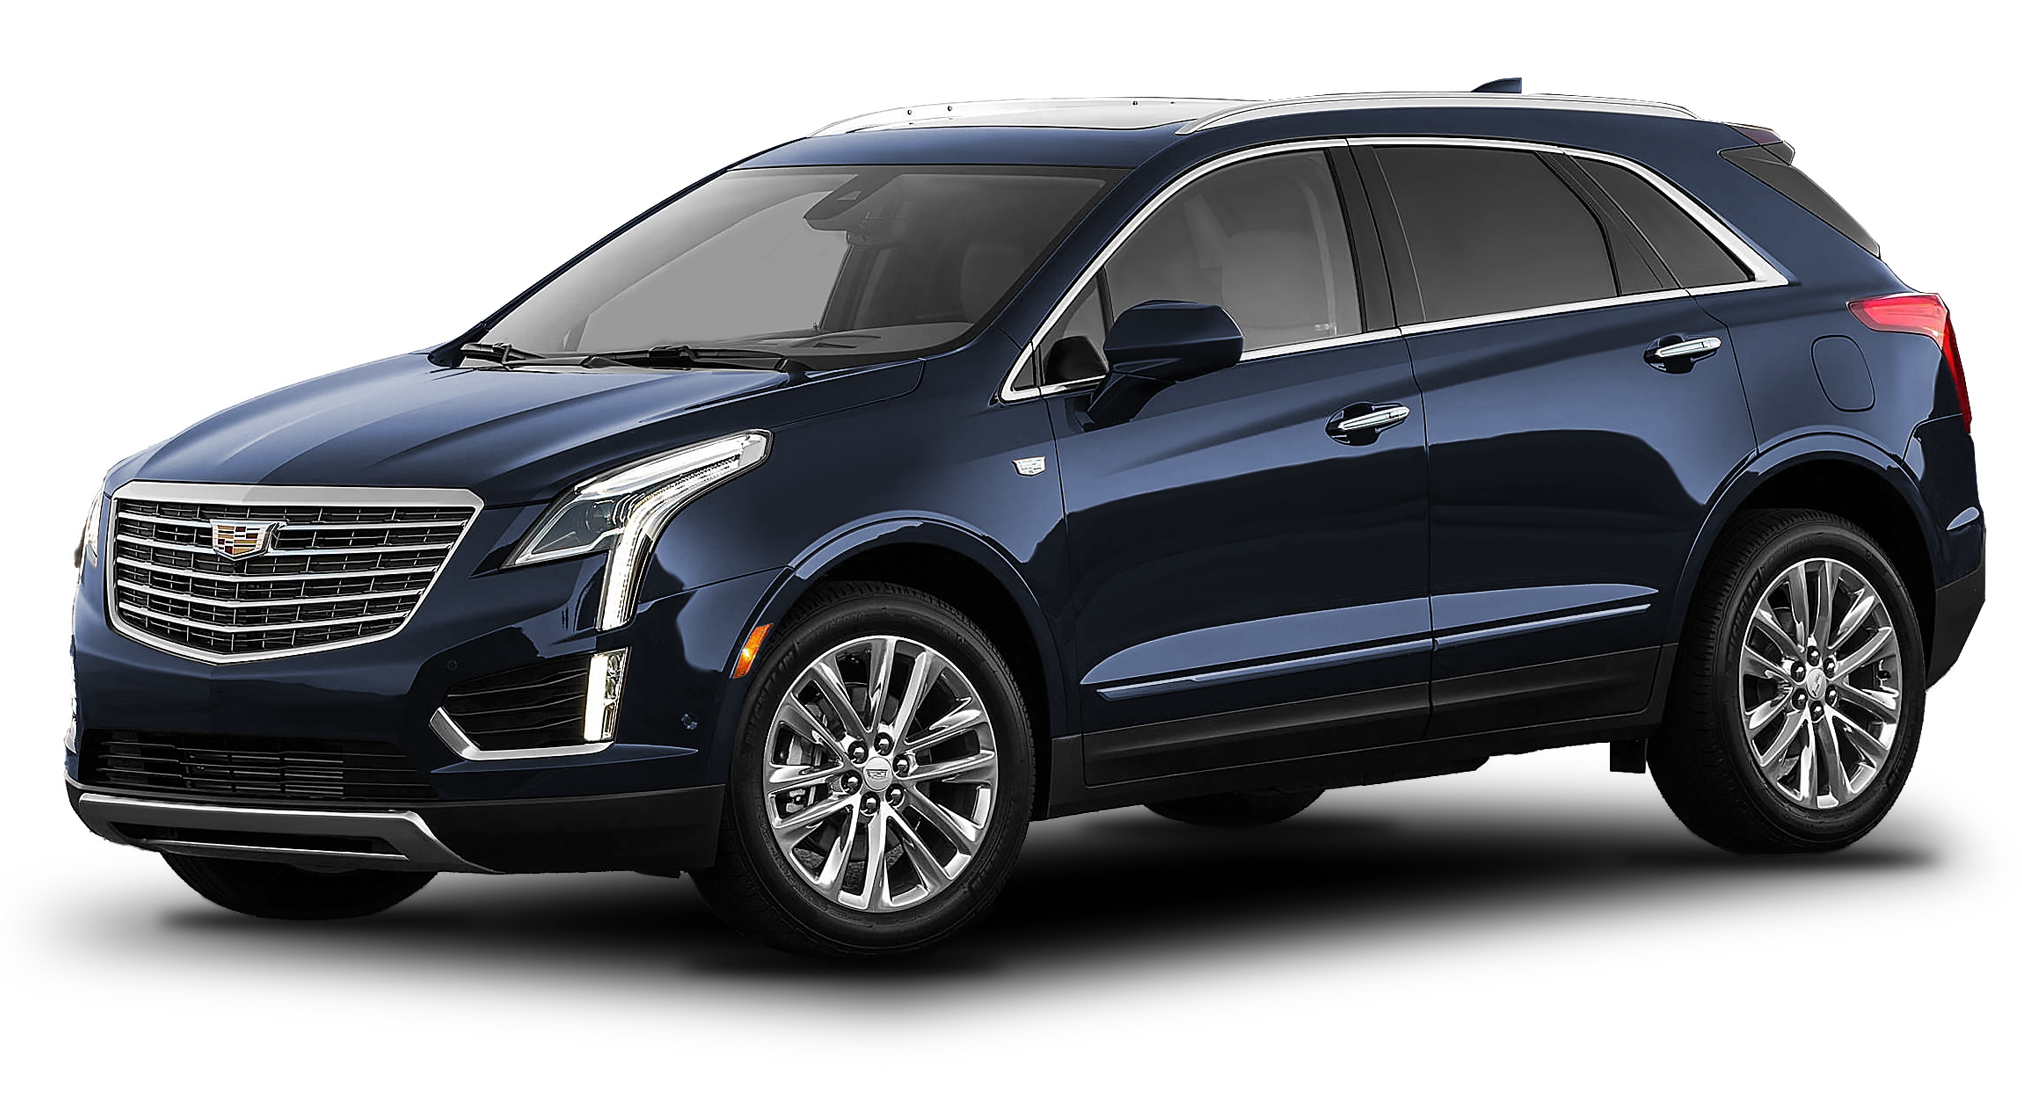 2017 cadillac xt5 blue 200 interior and exterior images. Black Bedroom Furniture Sets. Home Design Ideas